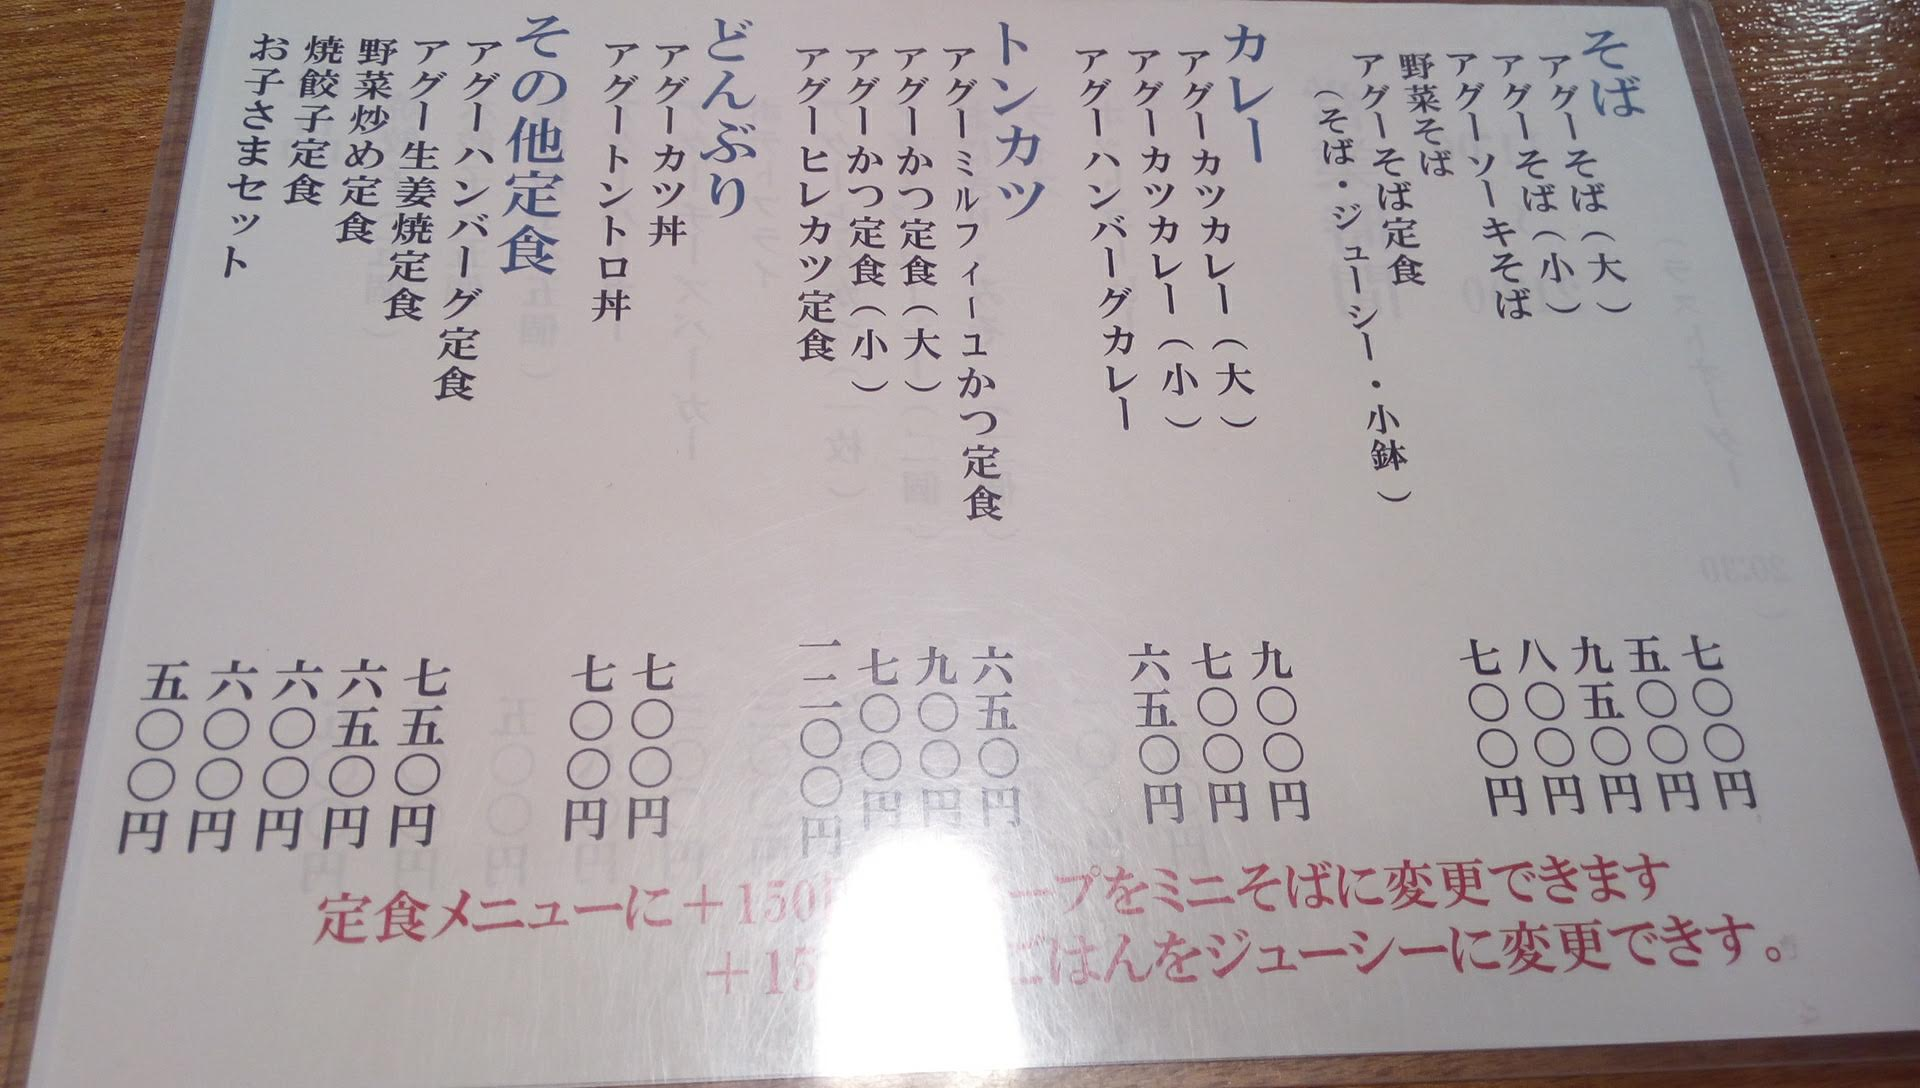 The menu of Nangokutei 1